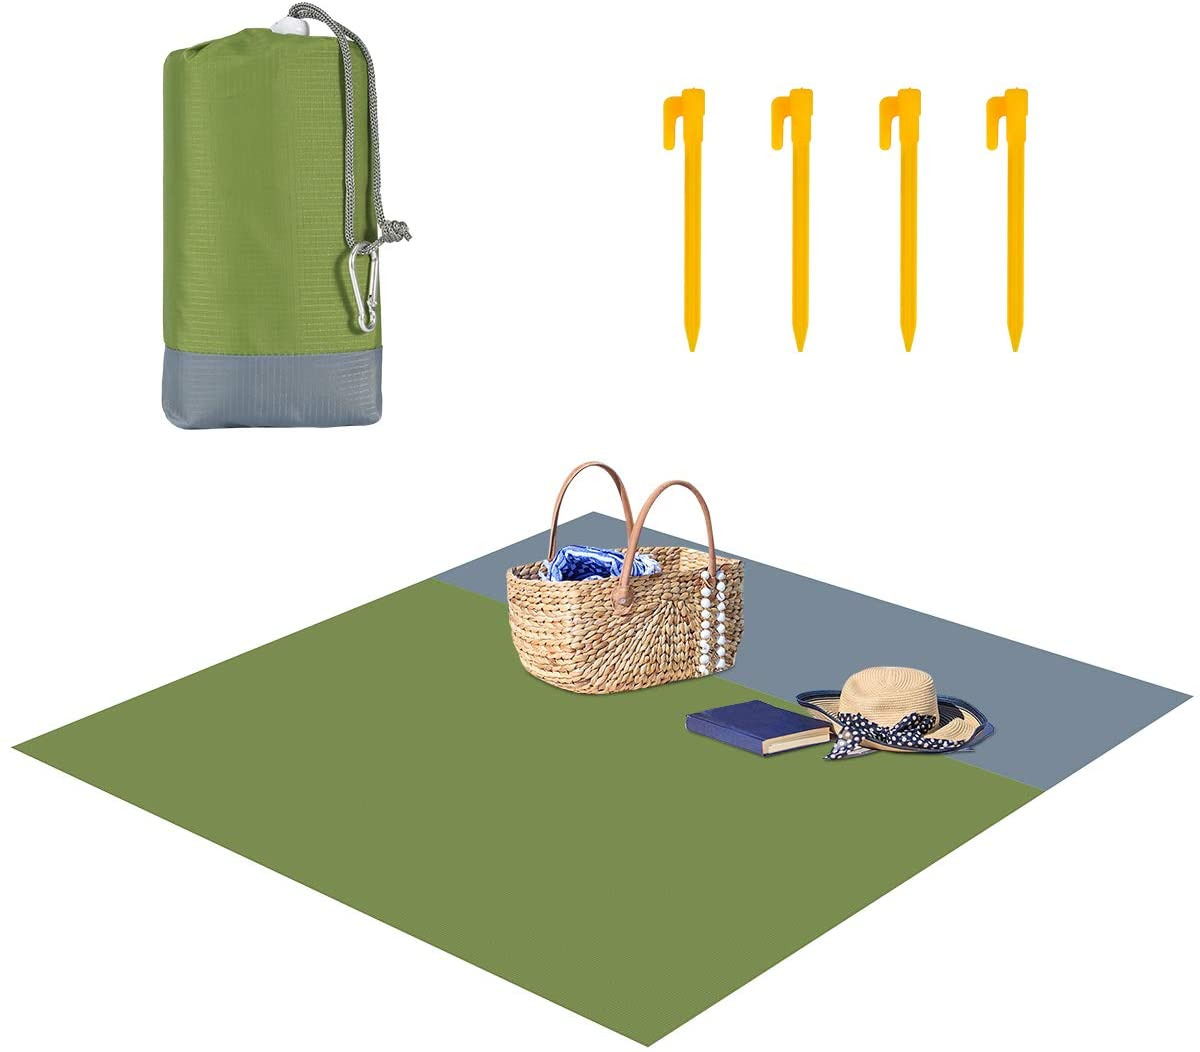 SunshineFace Portable Beach Blanket, Sand-Proof Waterproof Beach Mat Picnic Blanket for Travel Hiking Camping 82.68 x 78.74